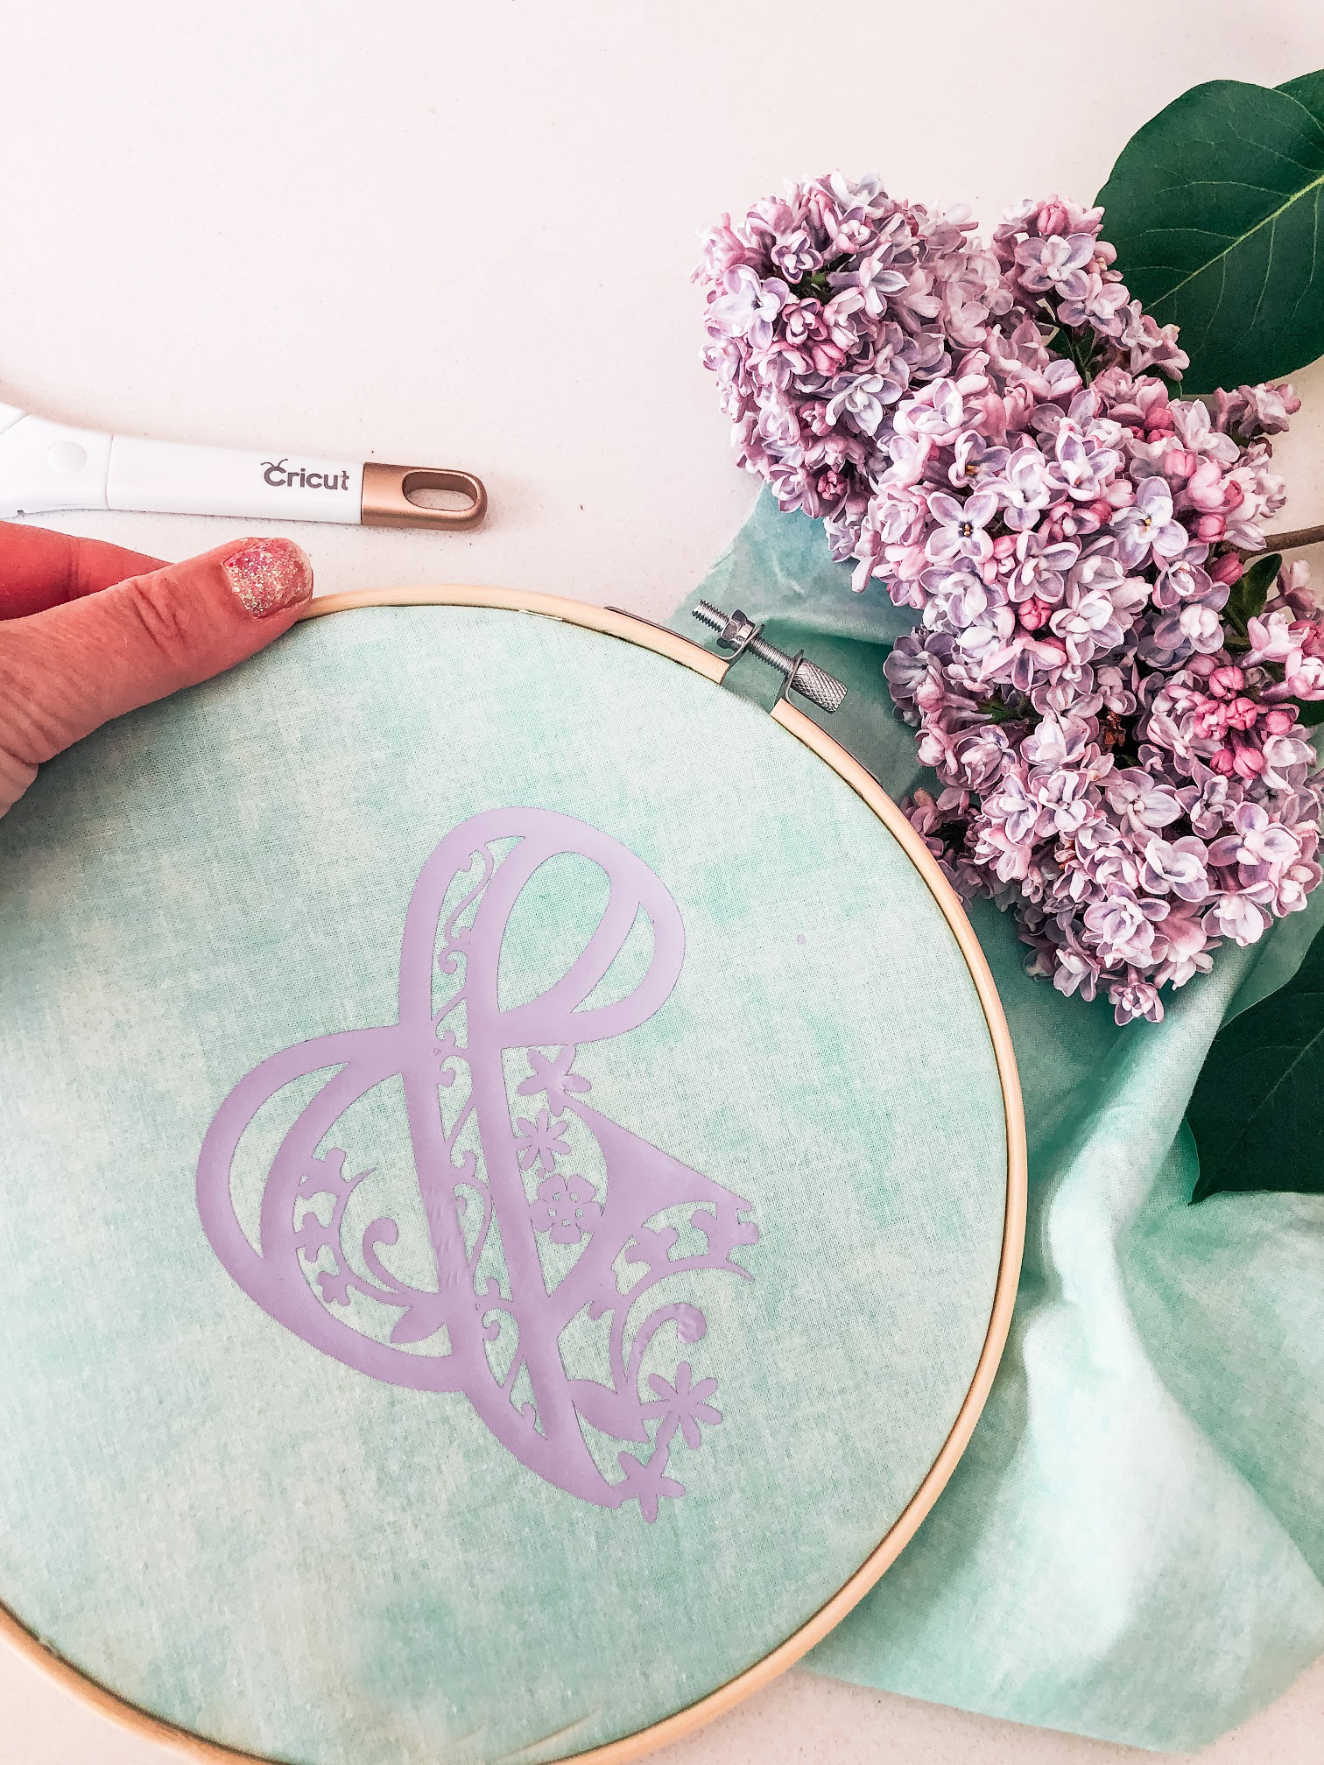 Craft ideas with Cricut iron on vinyl, DIY Embroidery Hoop